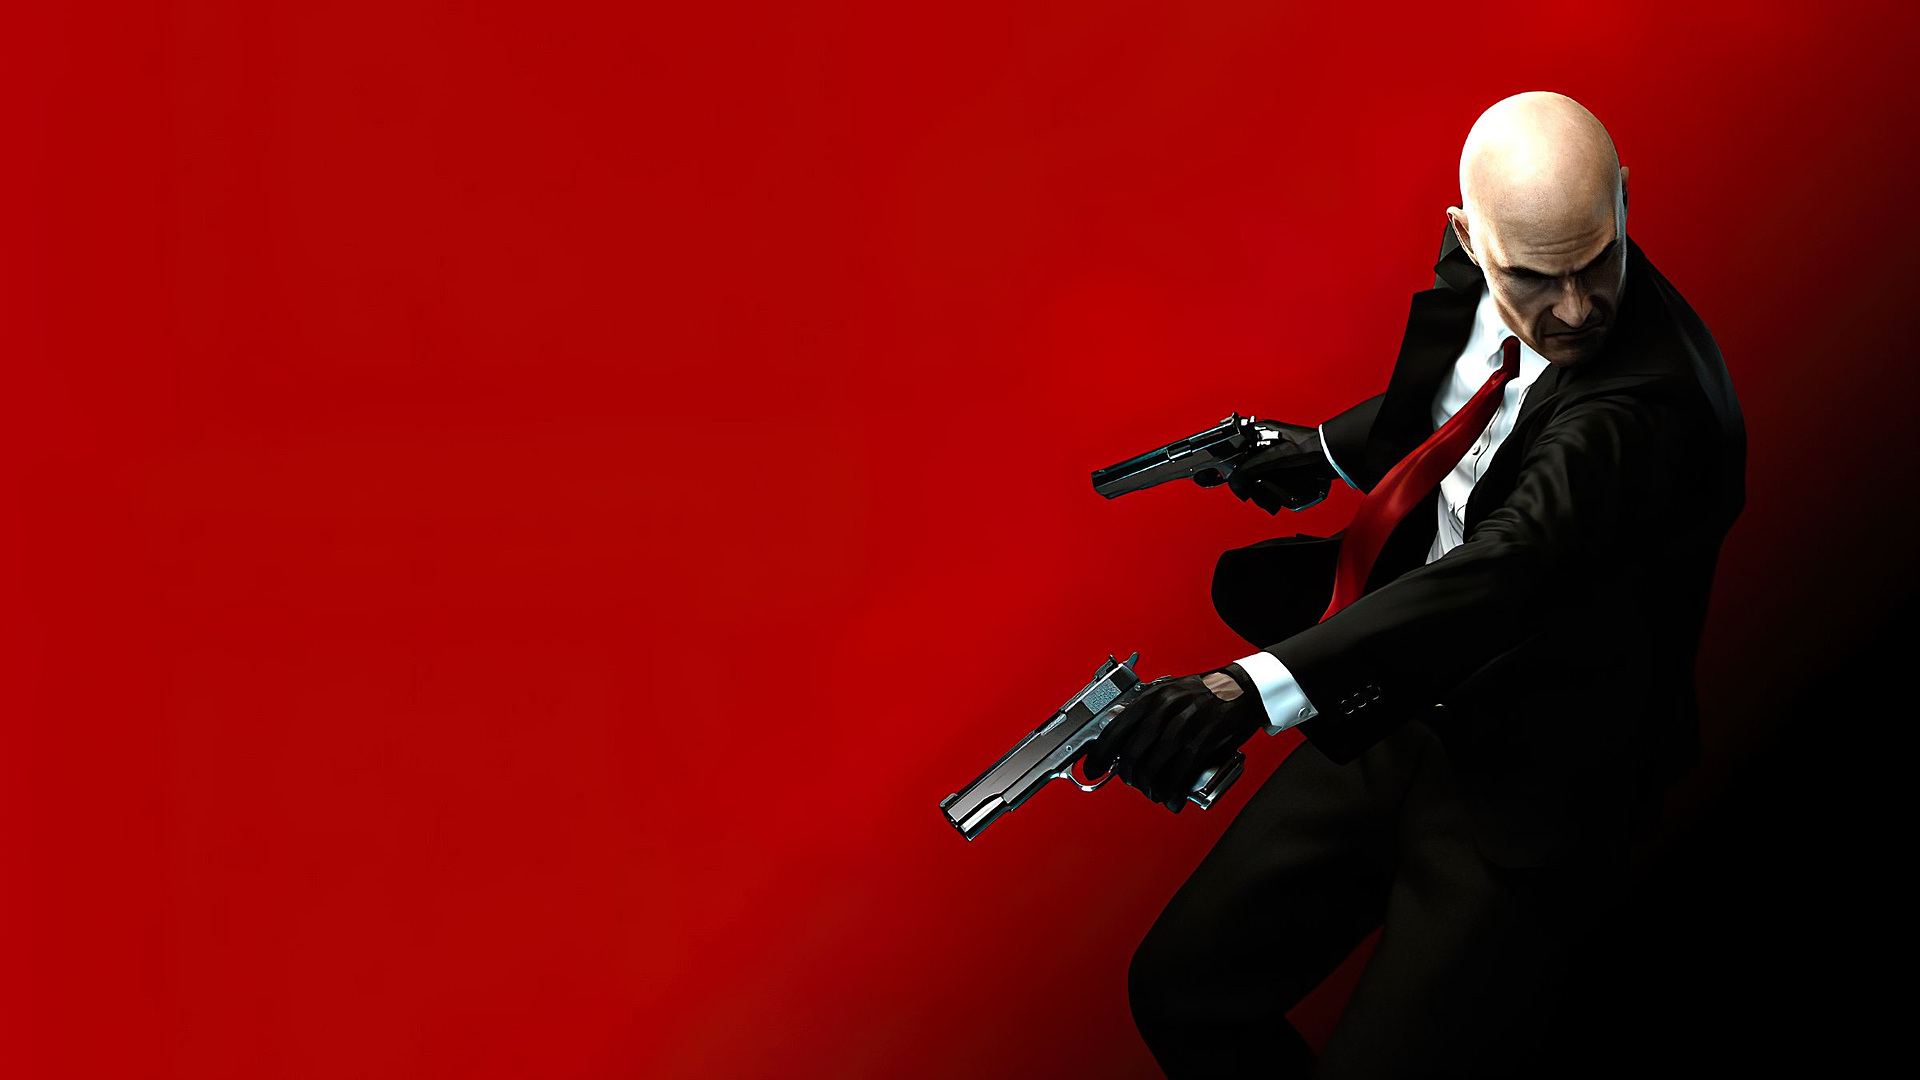 Hitman Absolution Agent 47 Wallpaper Hd Games 4k Wallpapers